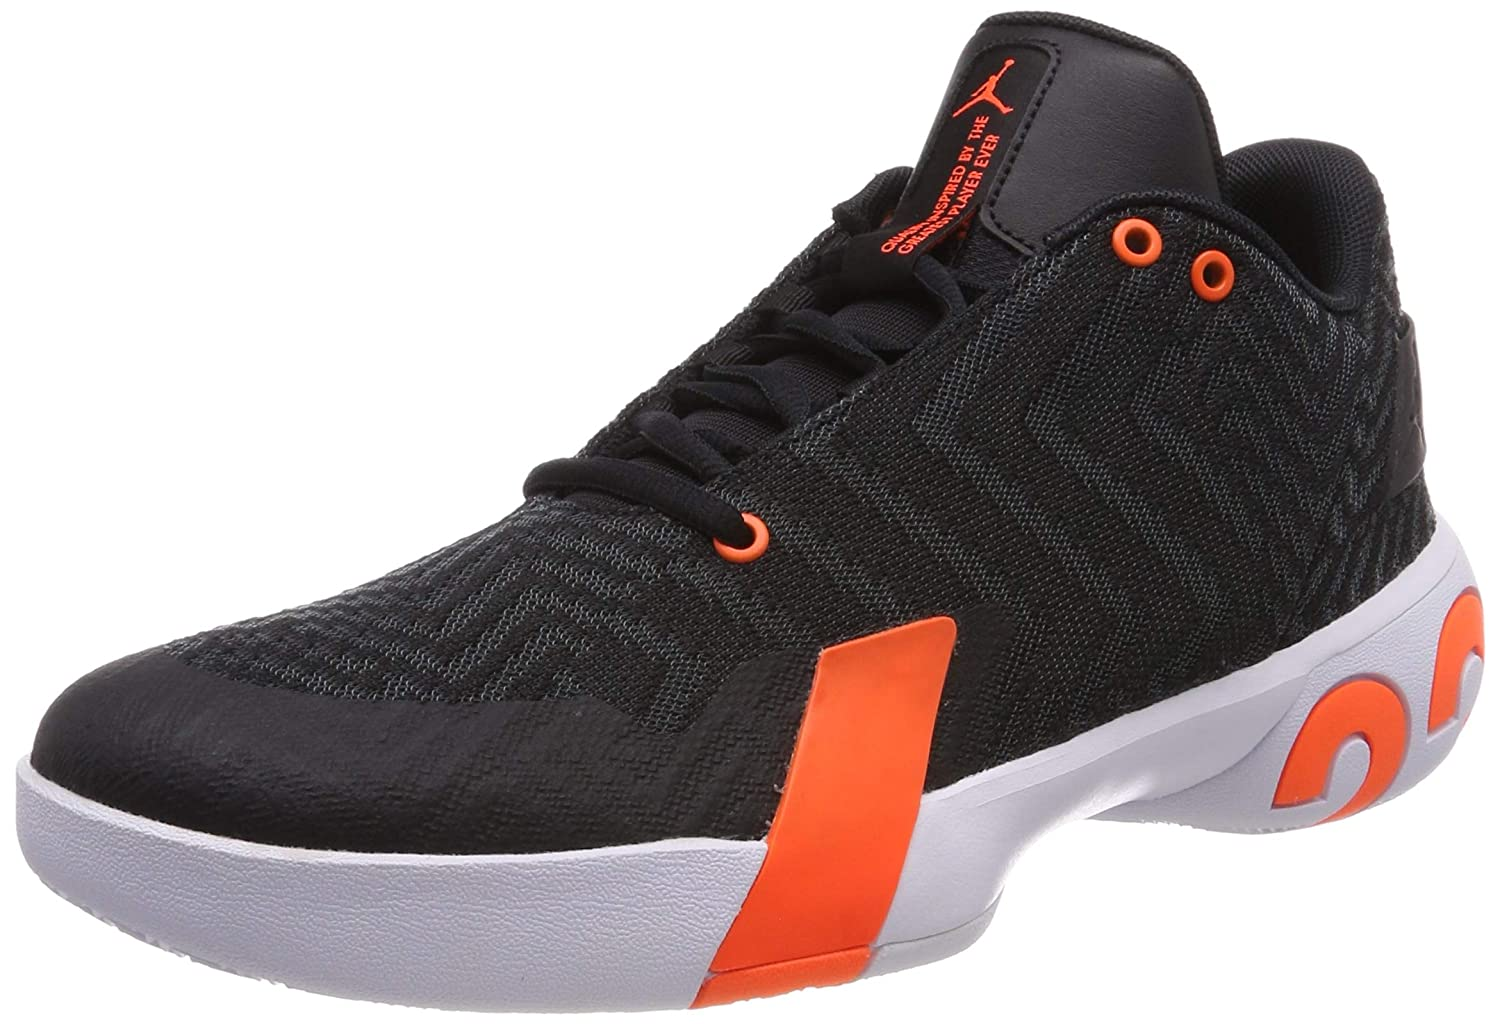 f2f8d50af7b Nike Men's Ultra Fly 3 Low Basketball Shoes: Amazon.co.uk: Shoes & Bags